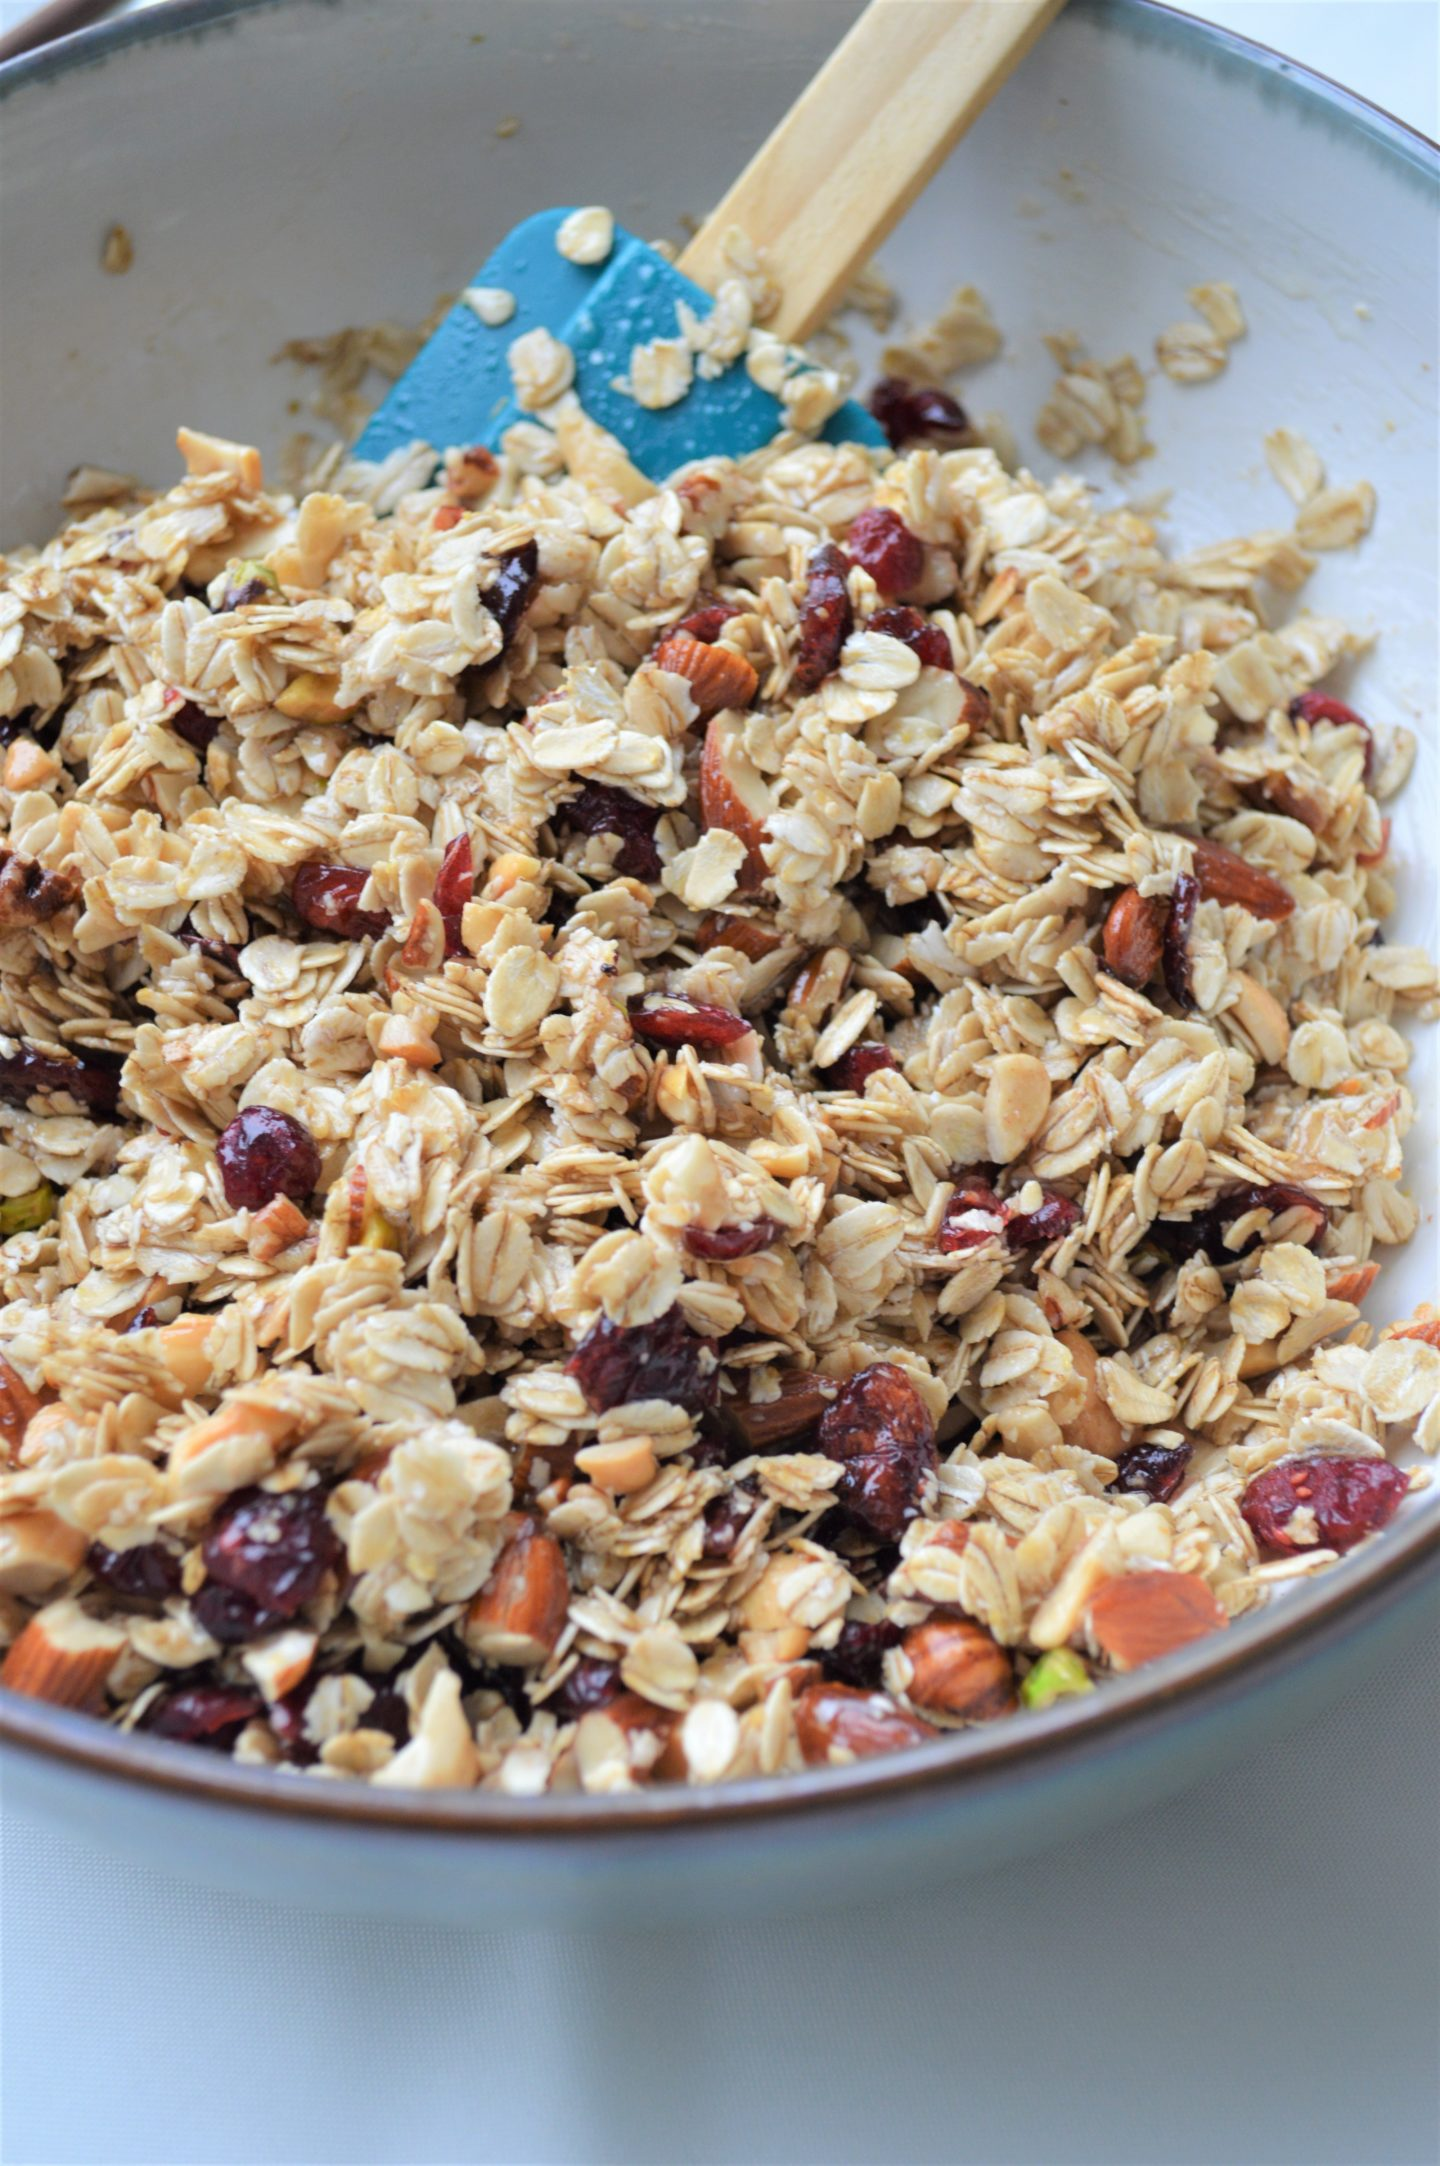 mixing up cranberries, nuts, and oats for granola.